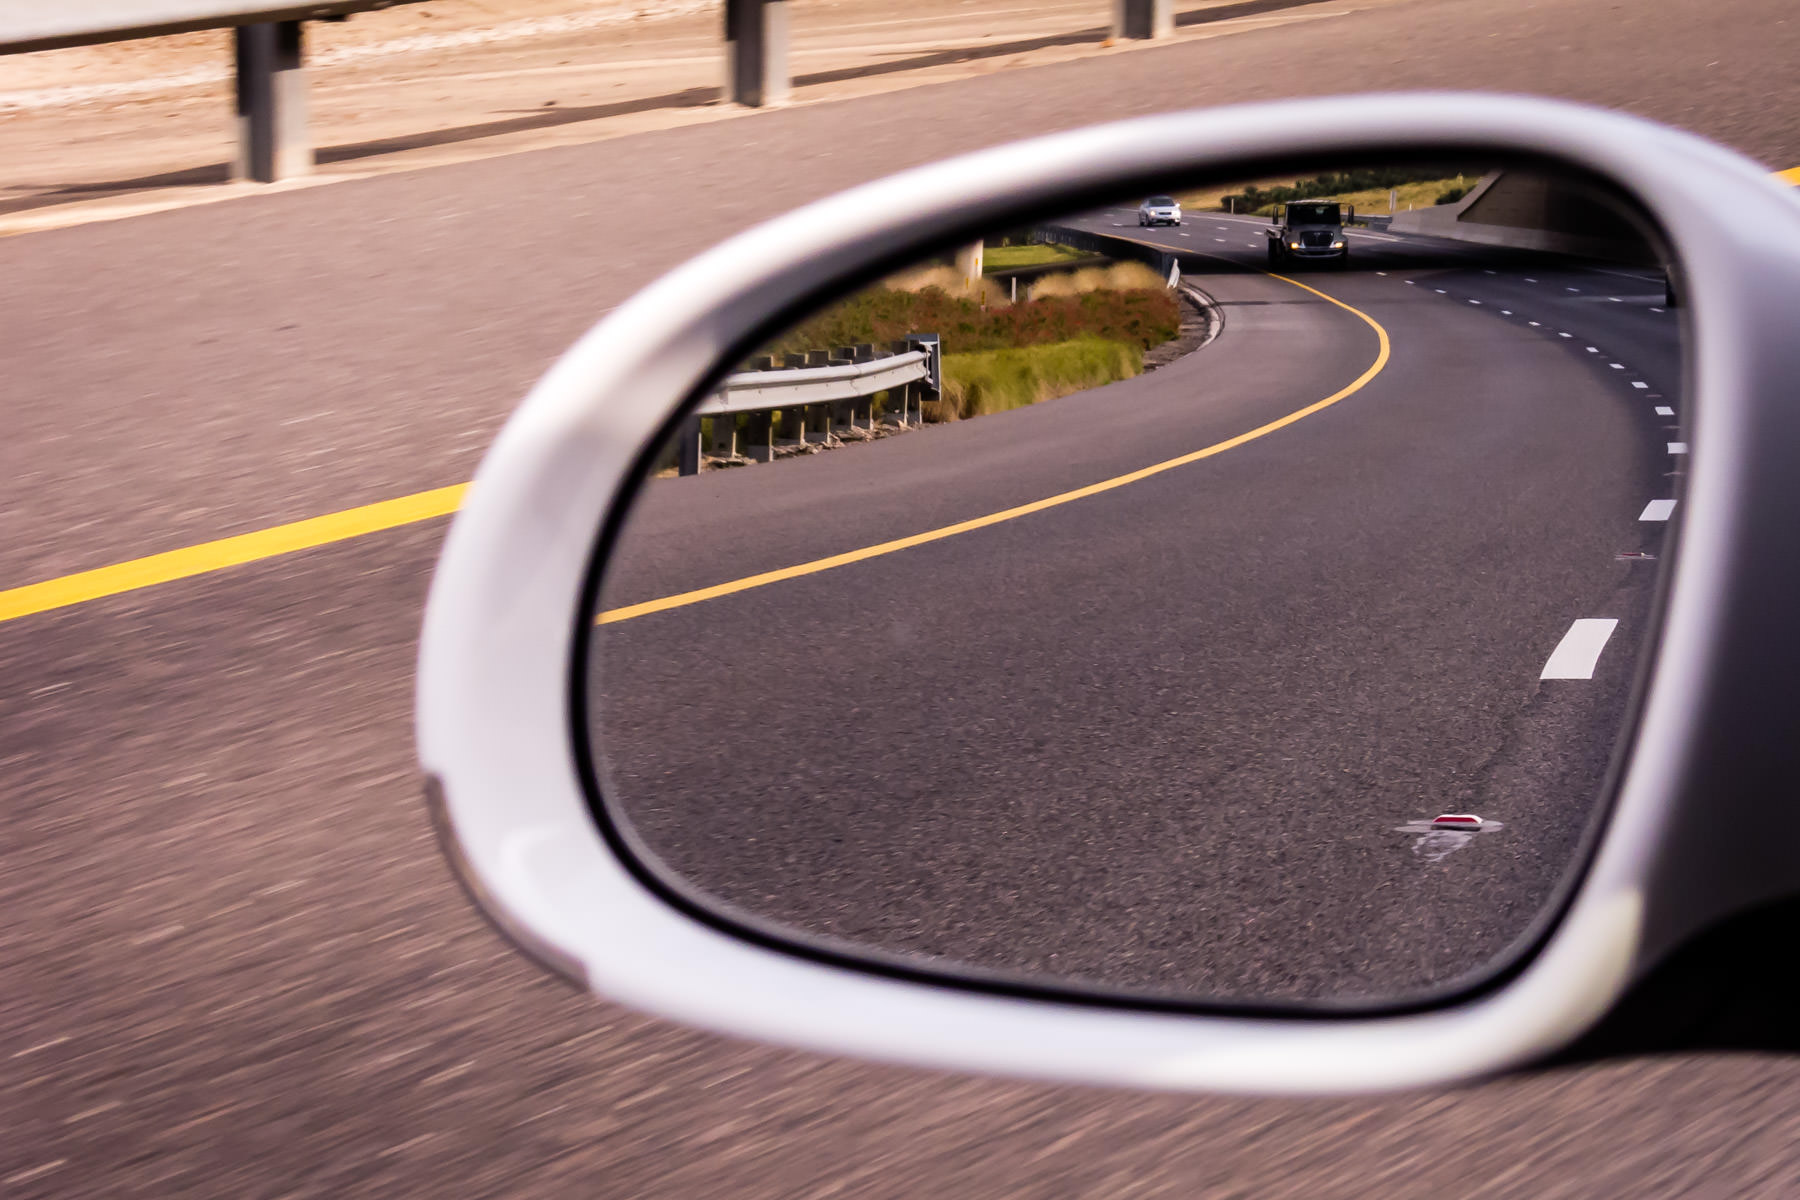 The President George Bush Turnpike in Dallas reflected in the mirror of a Volkswagen GTI.